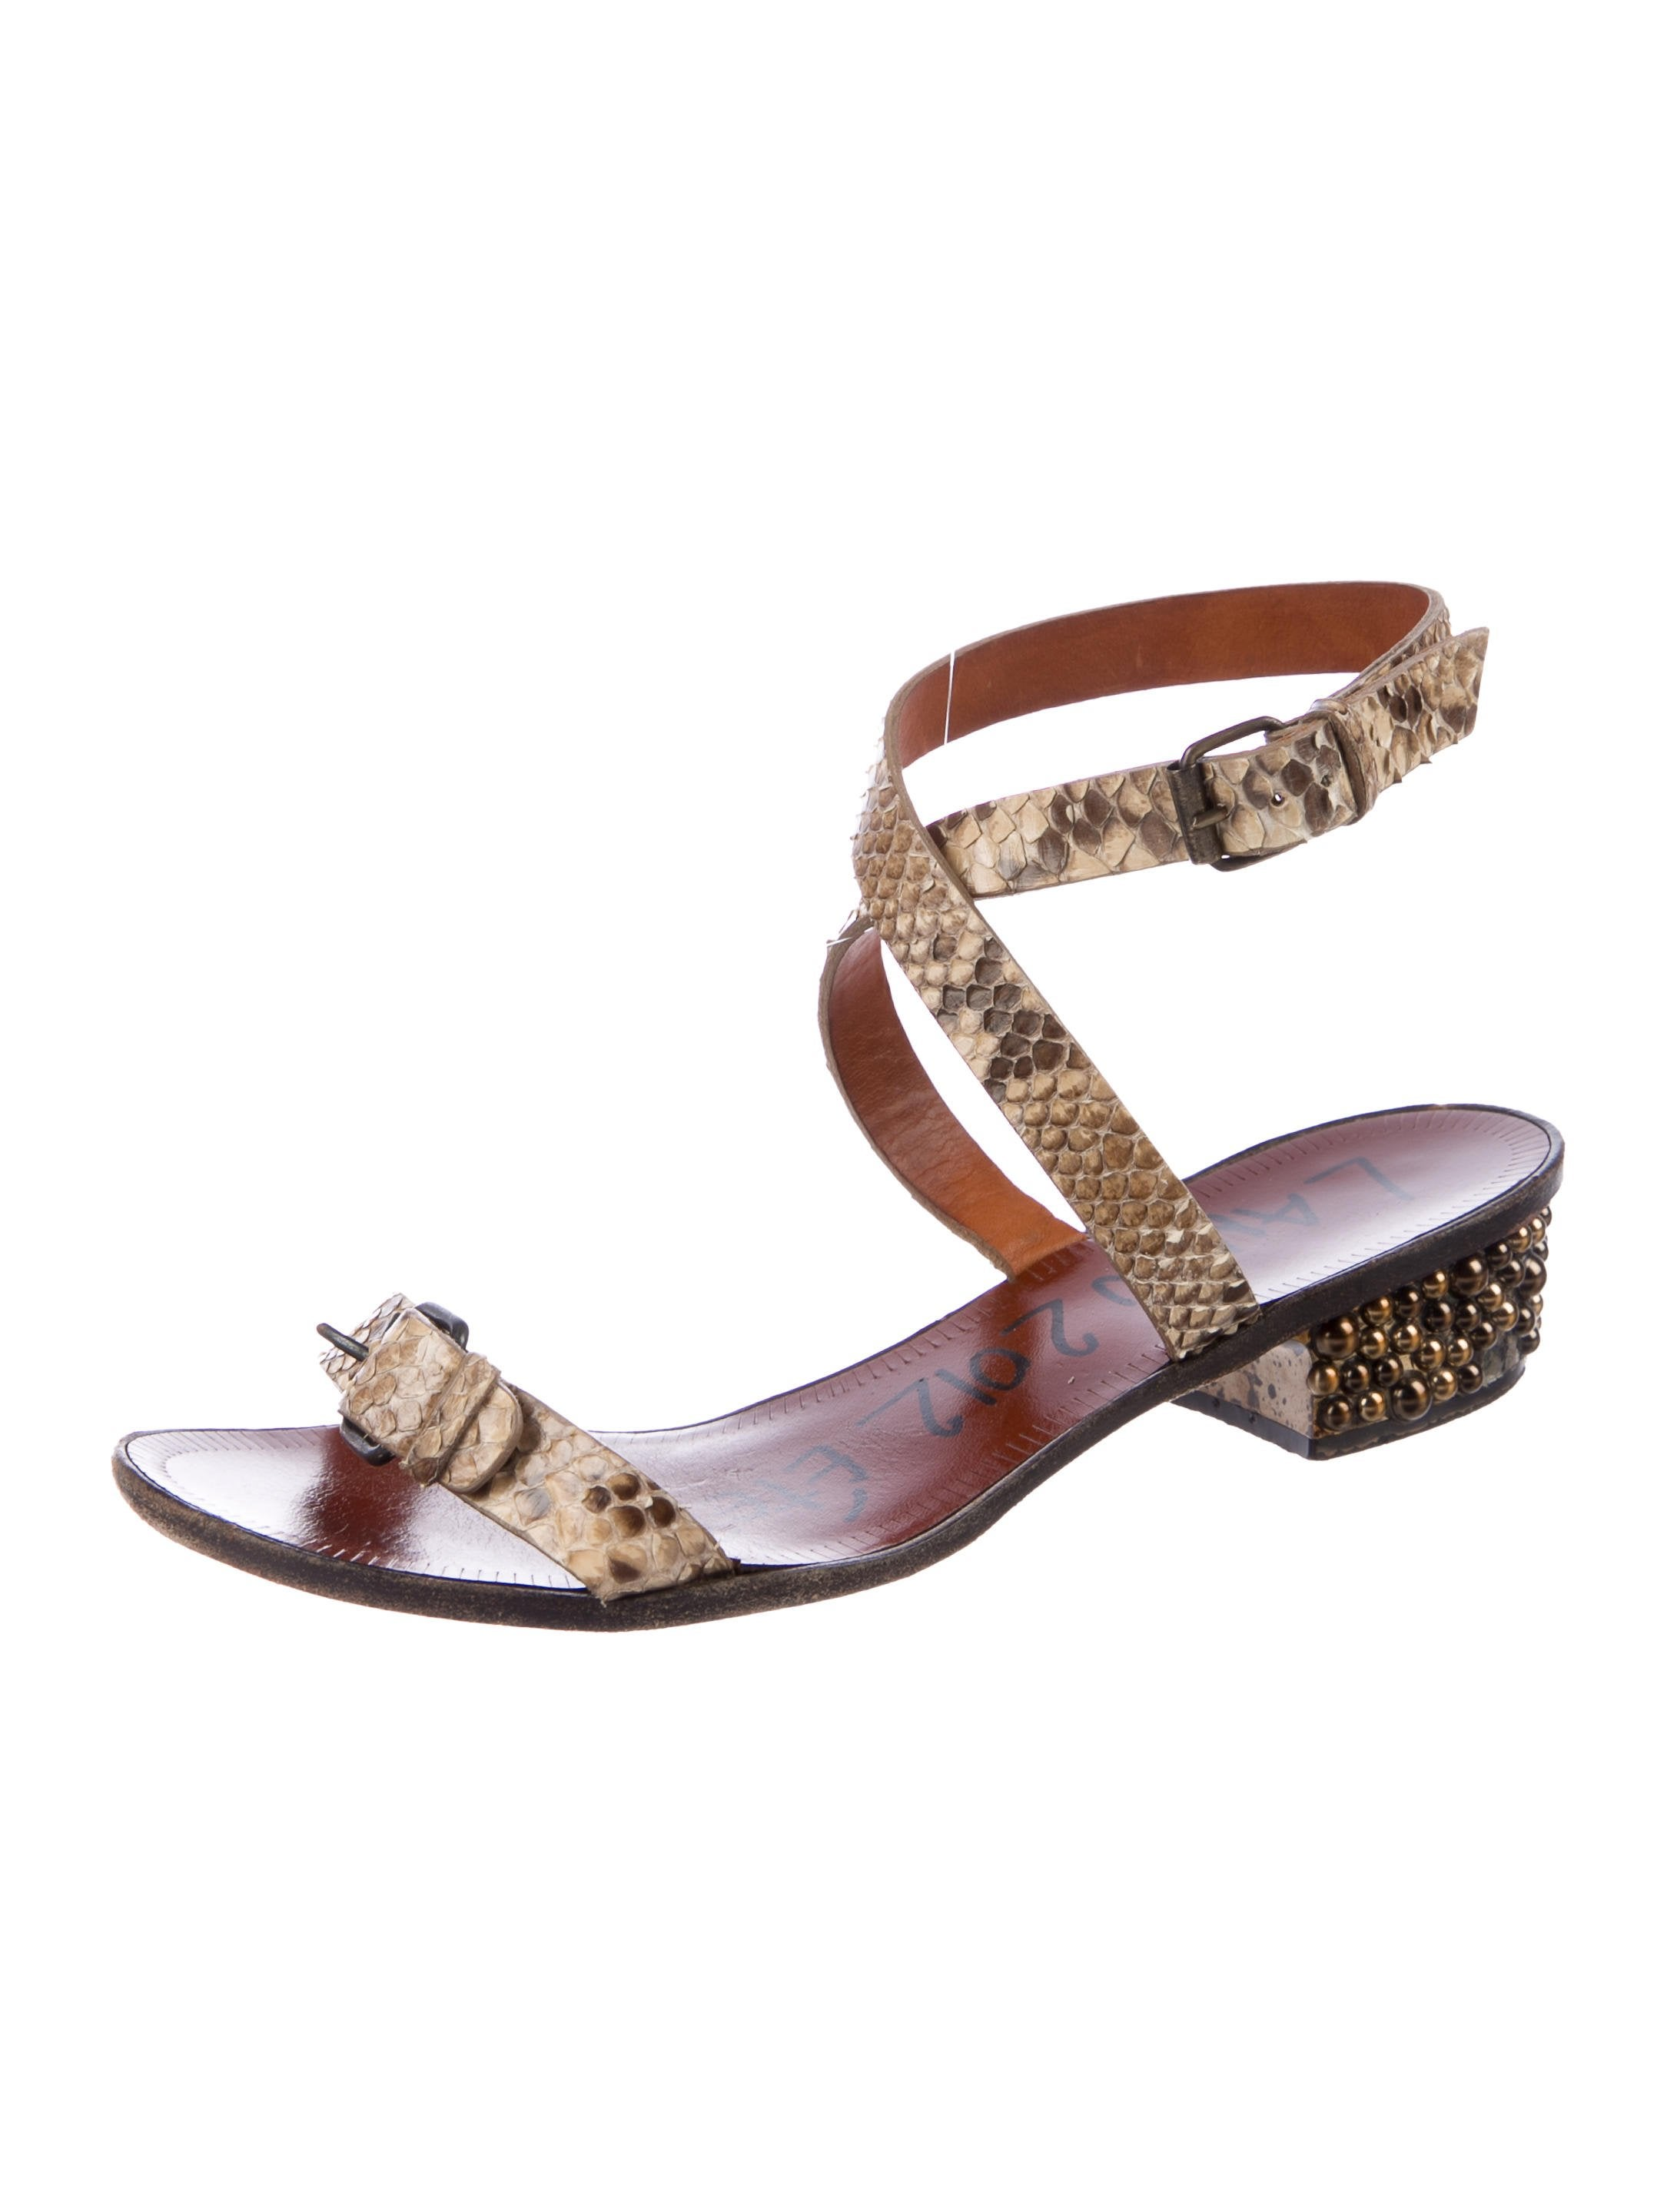 Lanvin Snakeskin Buckle Sandals sale great deals wholesale price for sale 7hLcm2MW4g